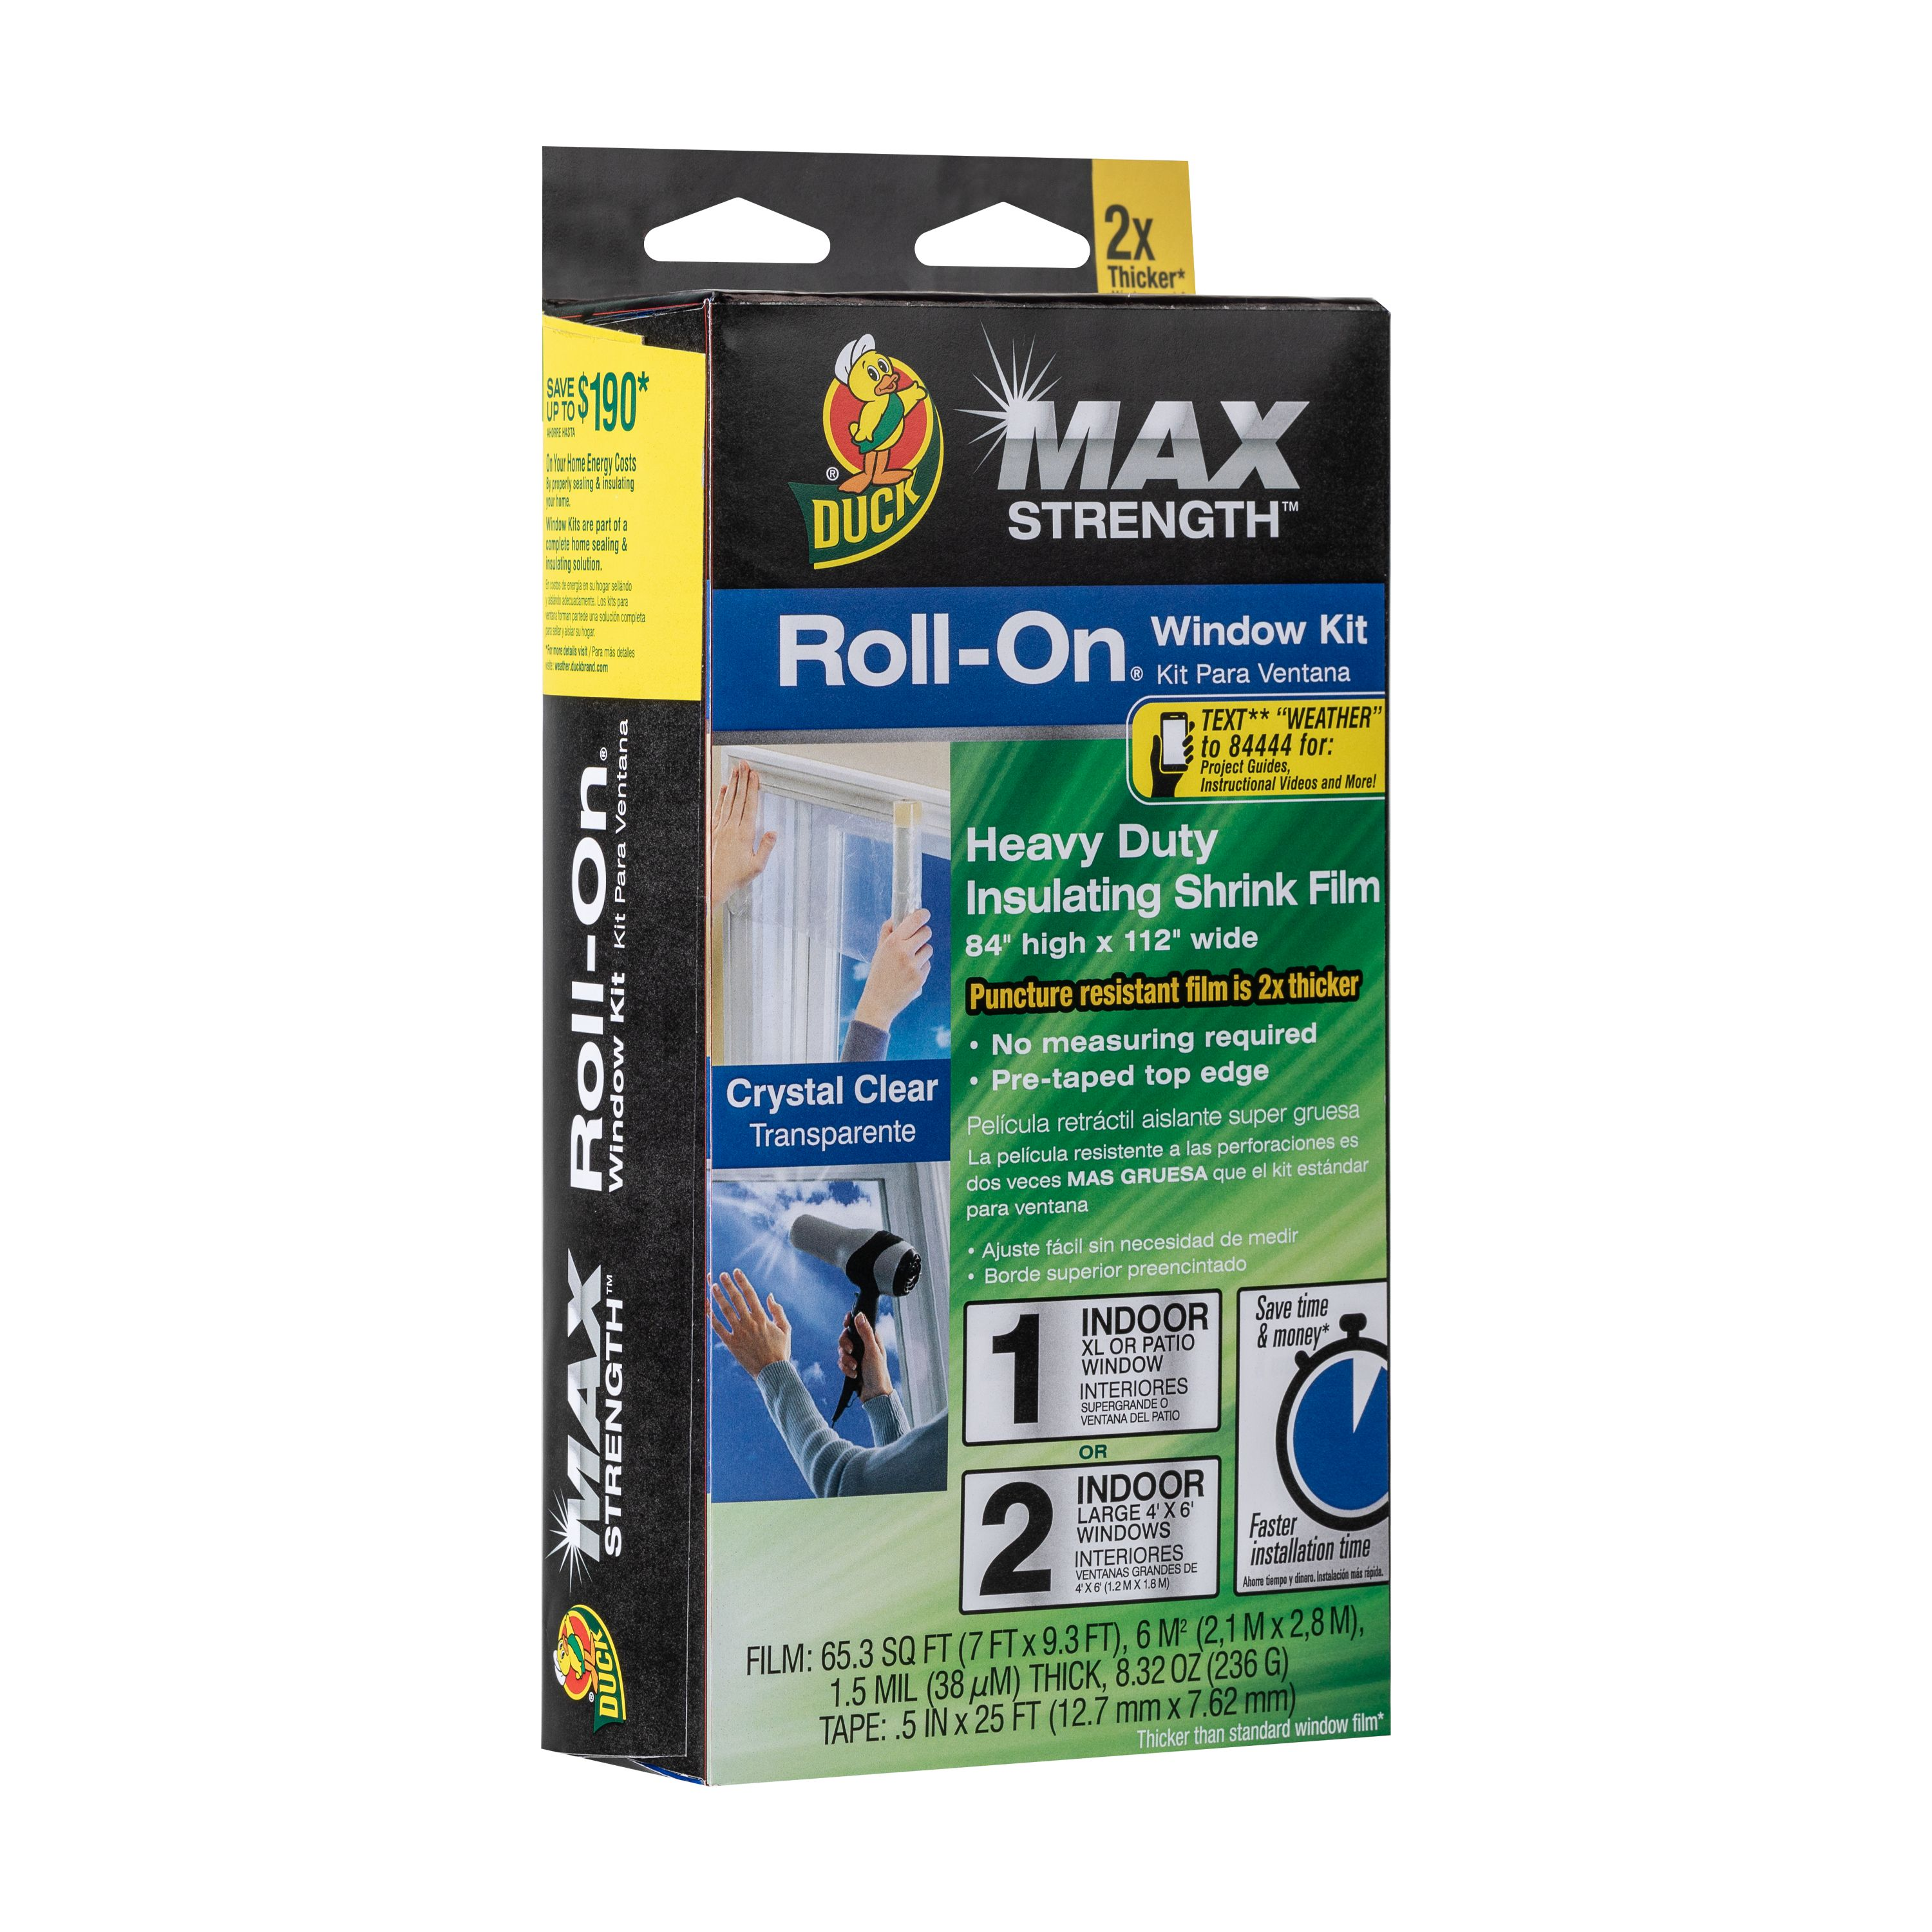 Duck Max Strength Roll-On Window Insulation Kits - Indoor, 84 in. x 112 in., XL/ Patio, 1-Count